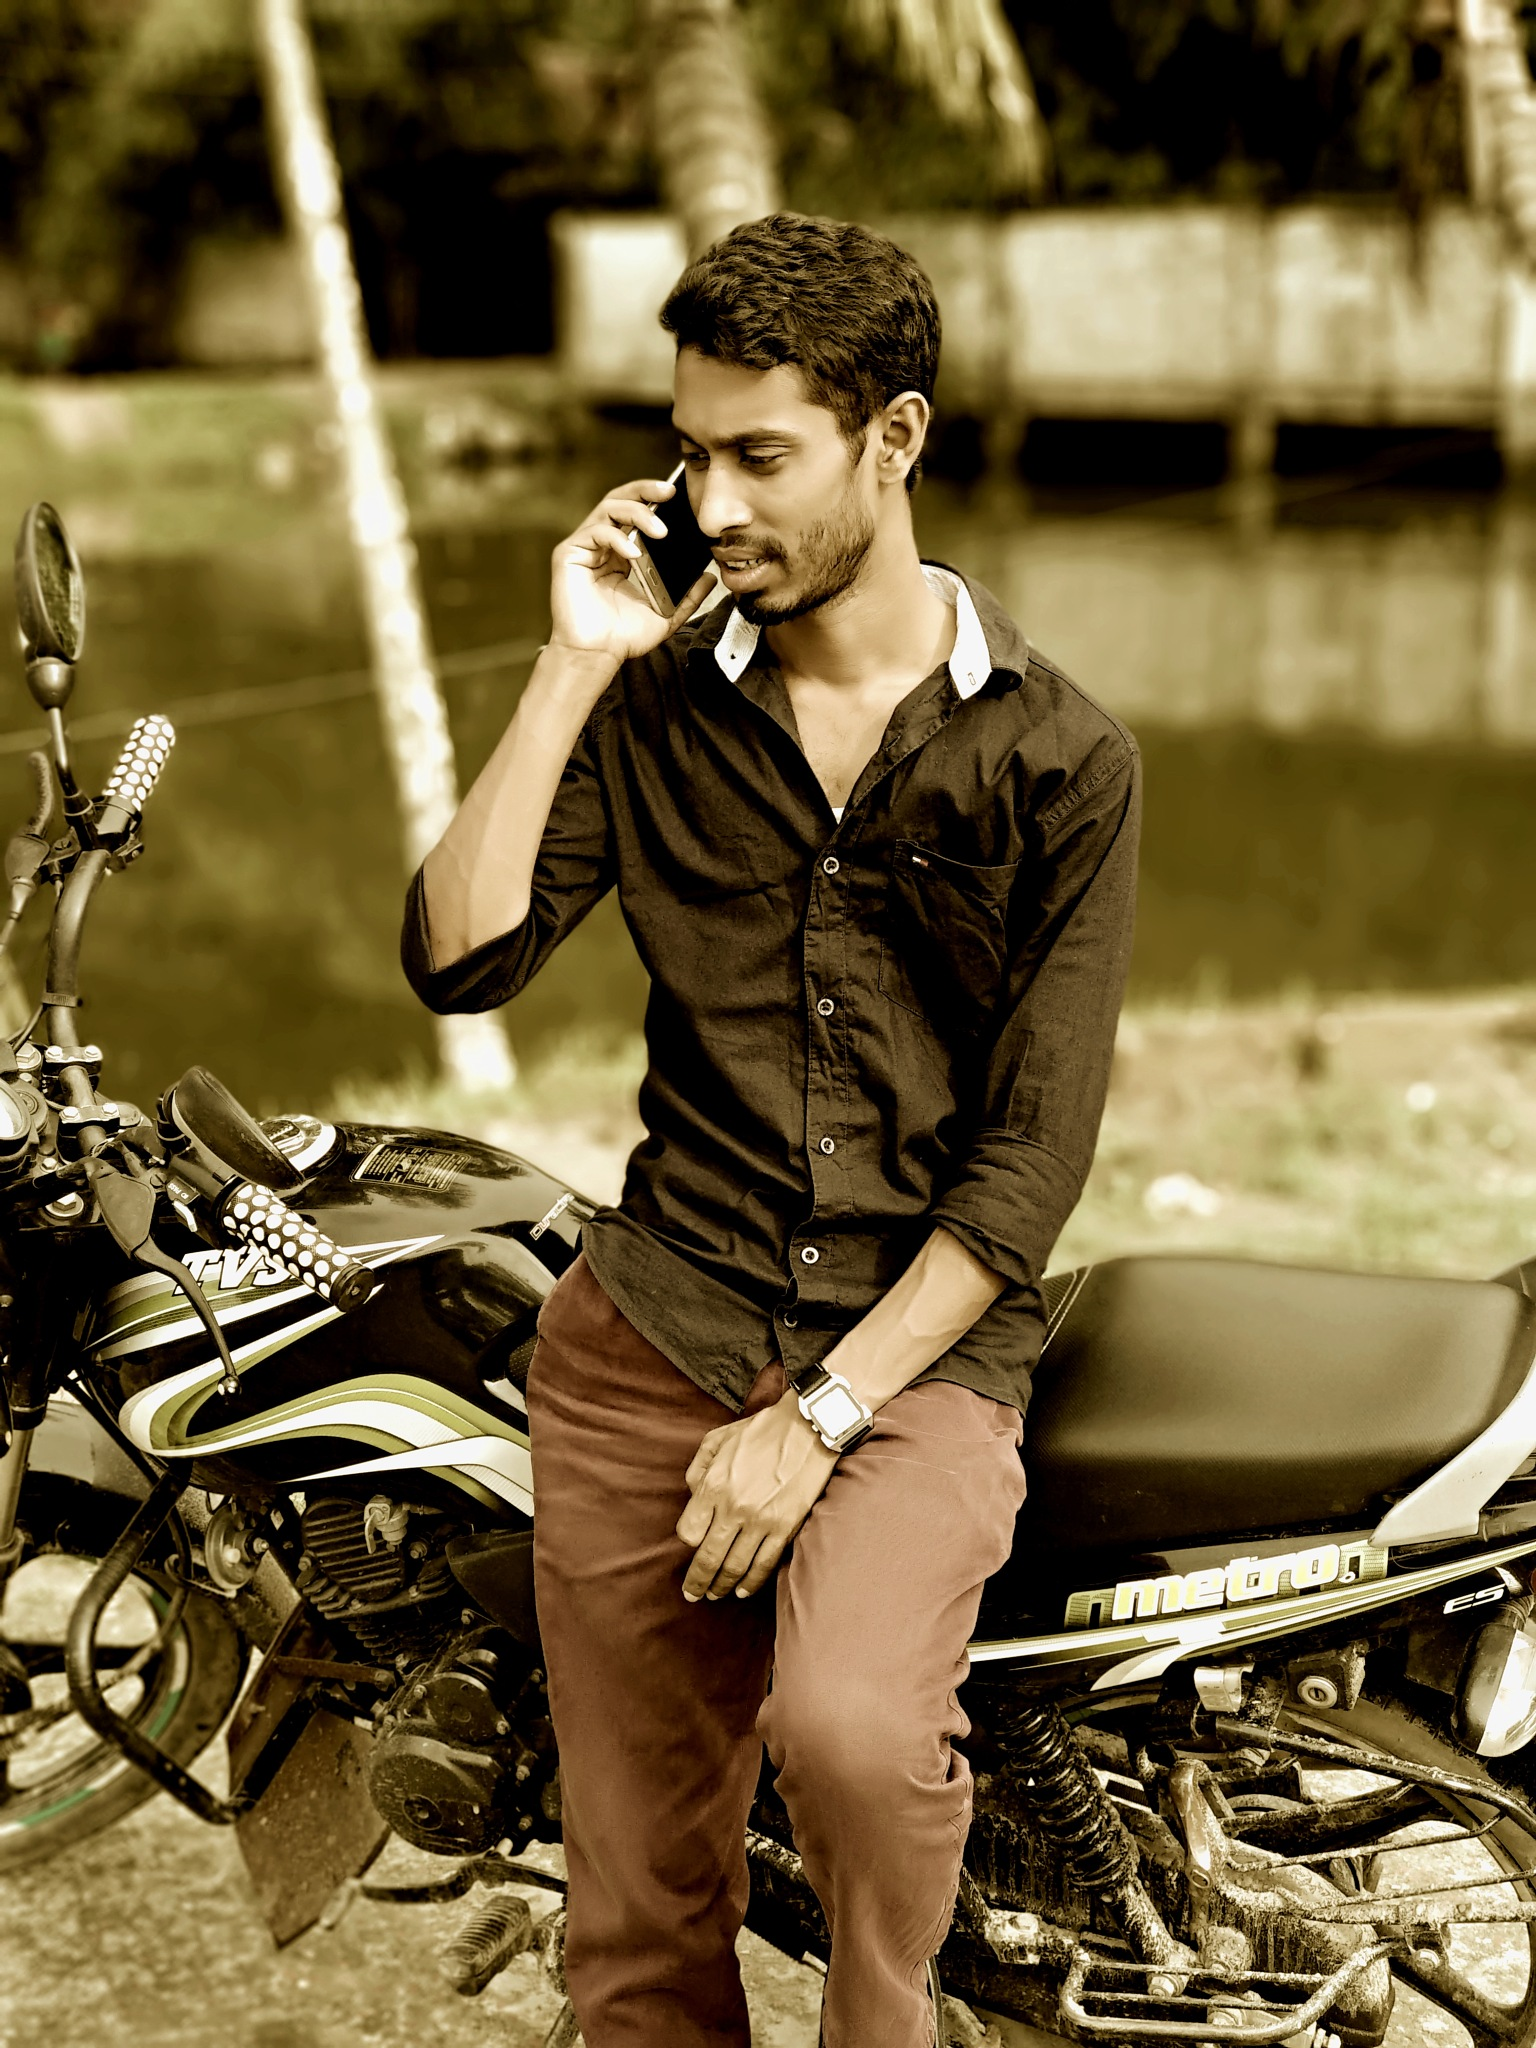 Untitled by Mohammed nayeem